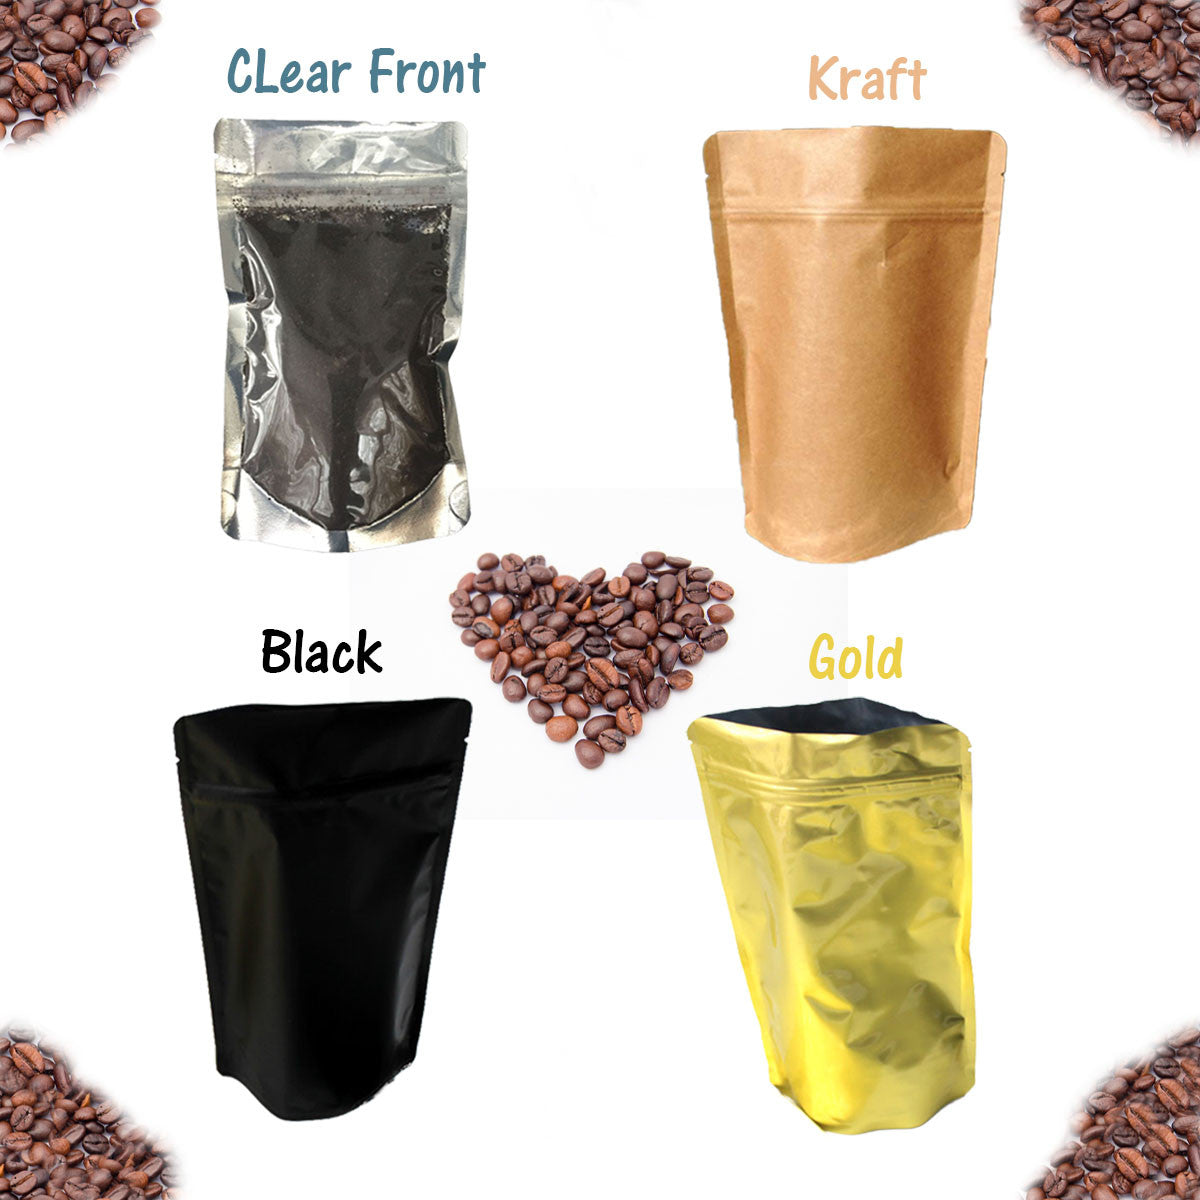 2 oz Stand Up Food Safe Resealable Foil Lined Pouch Bags, Kraft, Gold, Black, Clear Front